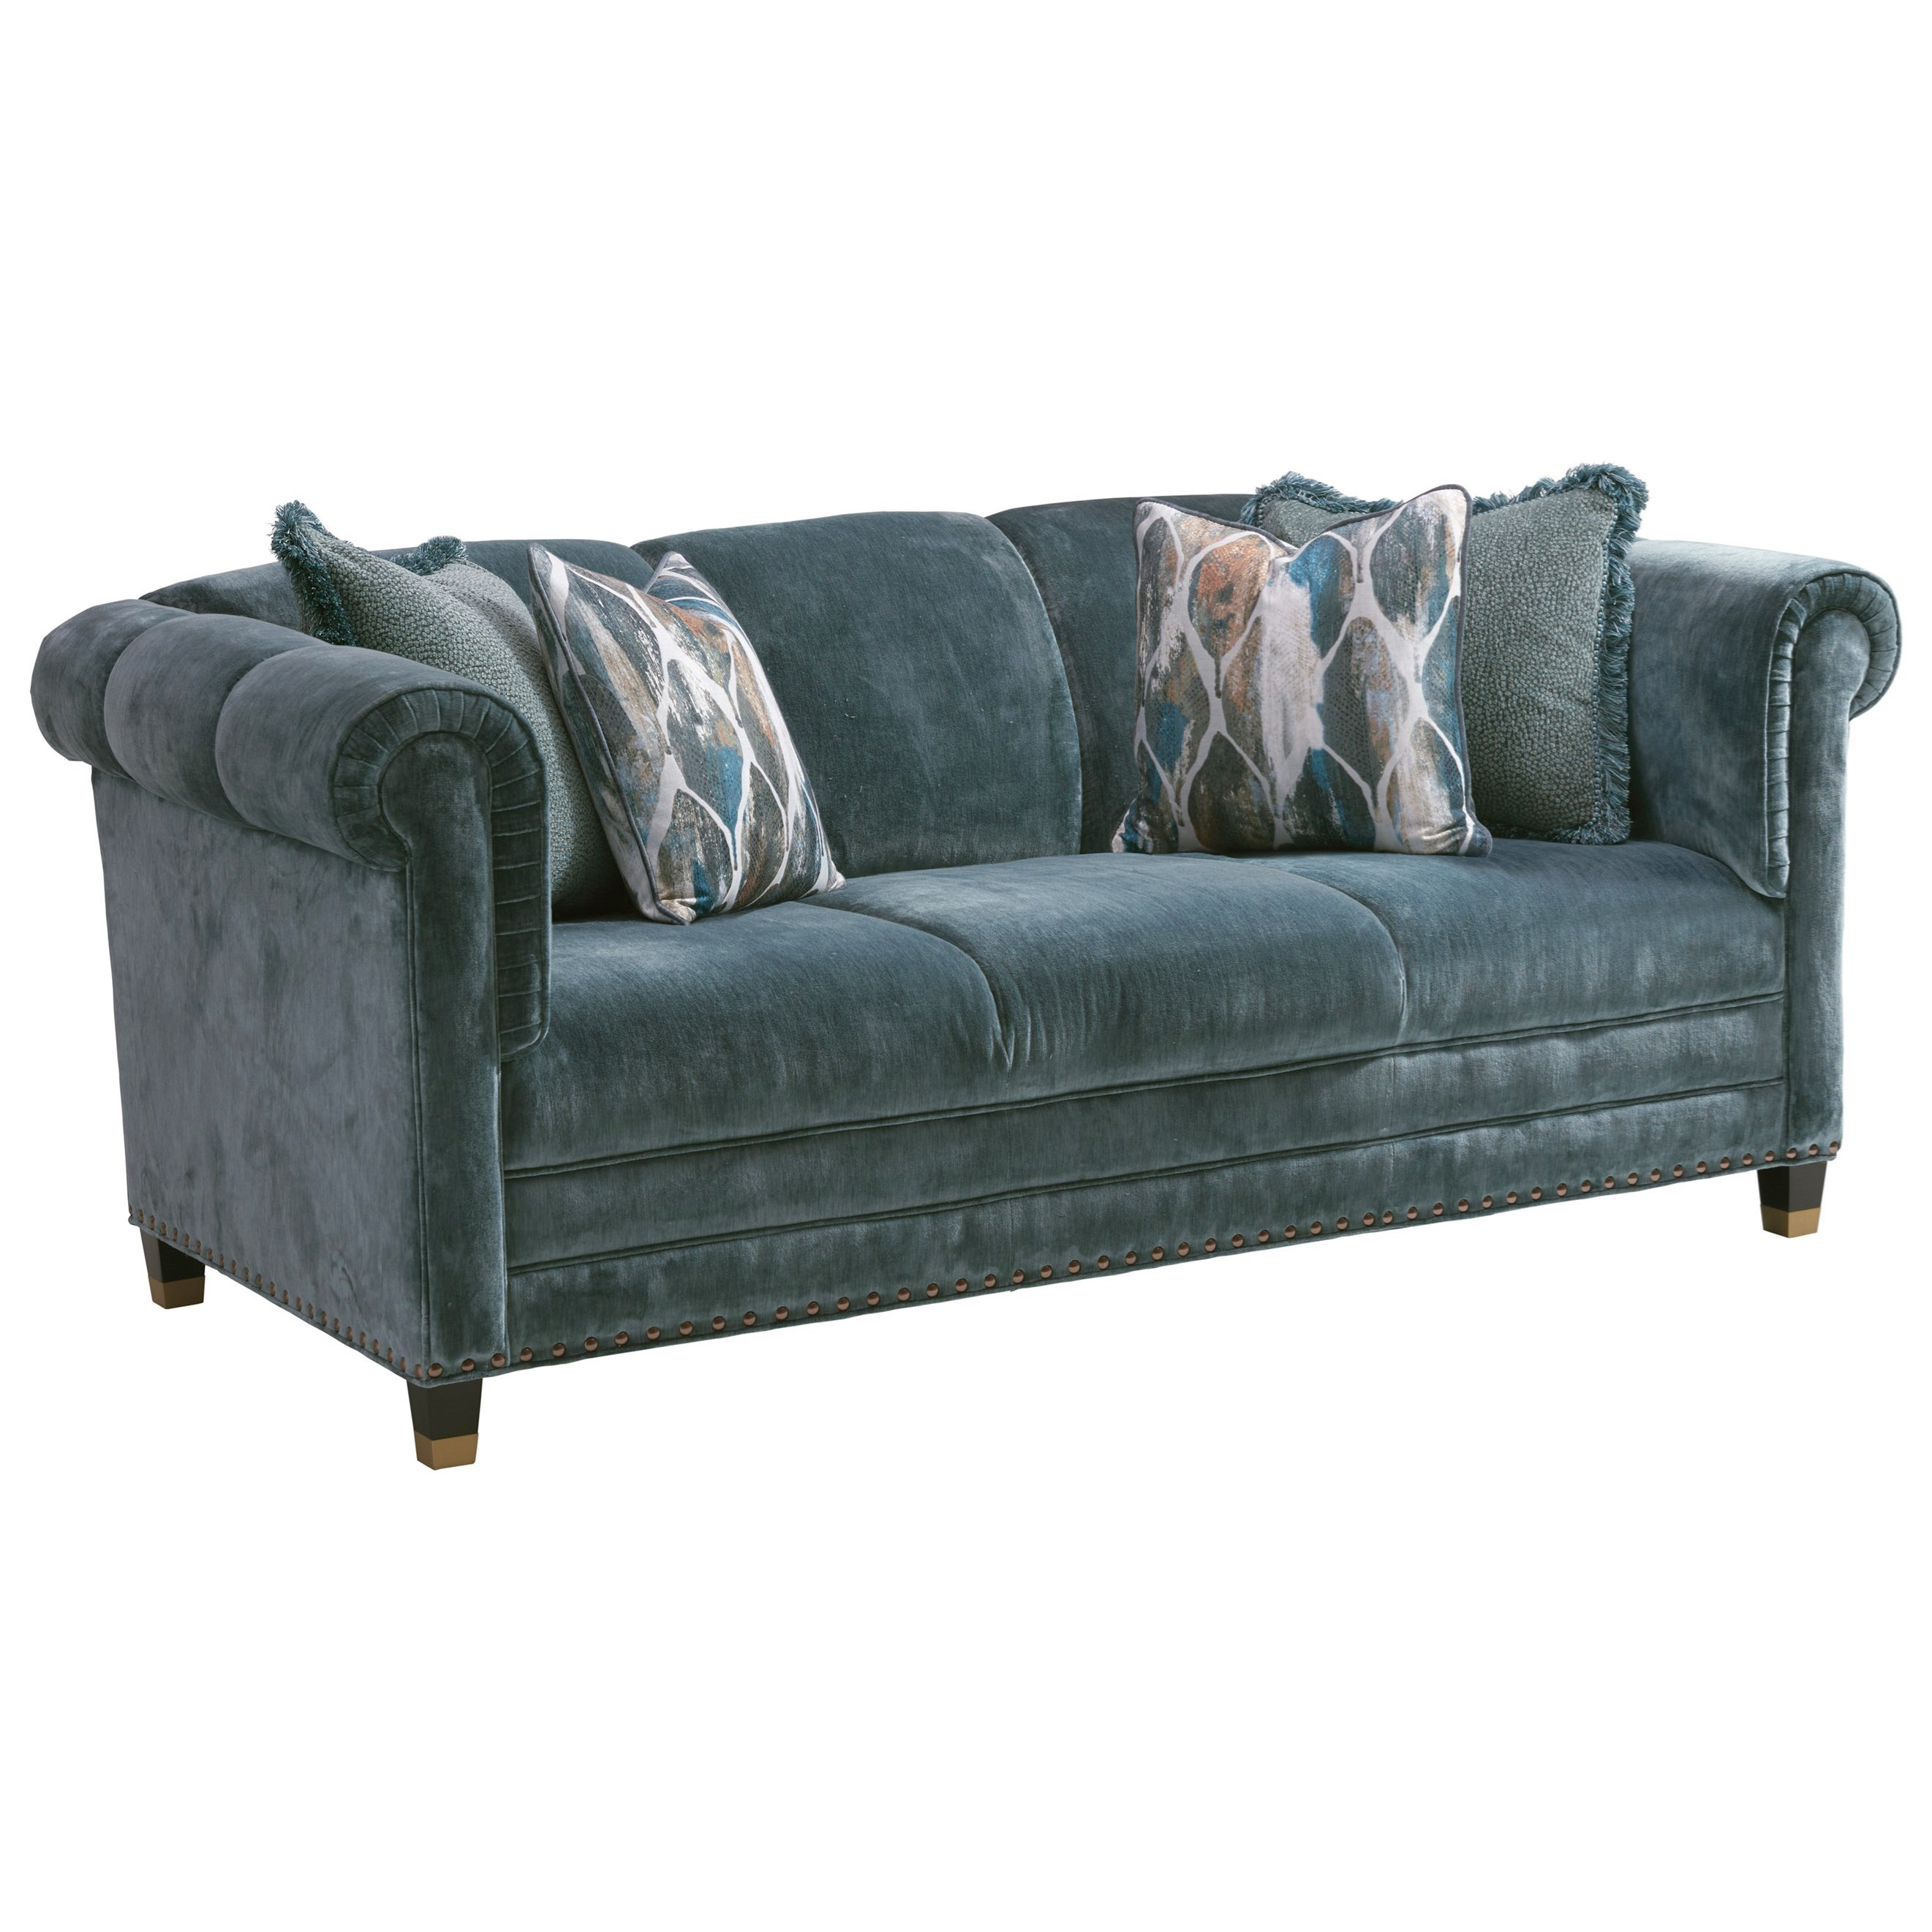 Carlyle Springfield Apartment Sofa by Lexington at Baer's Furniture